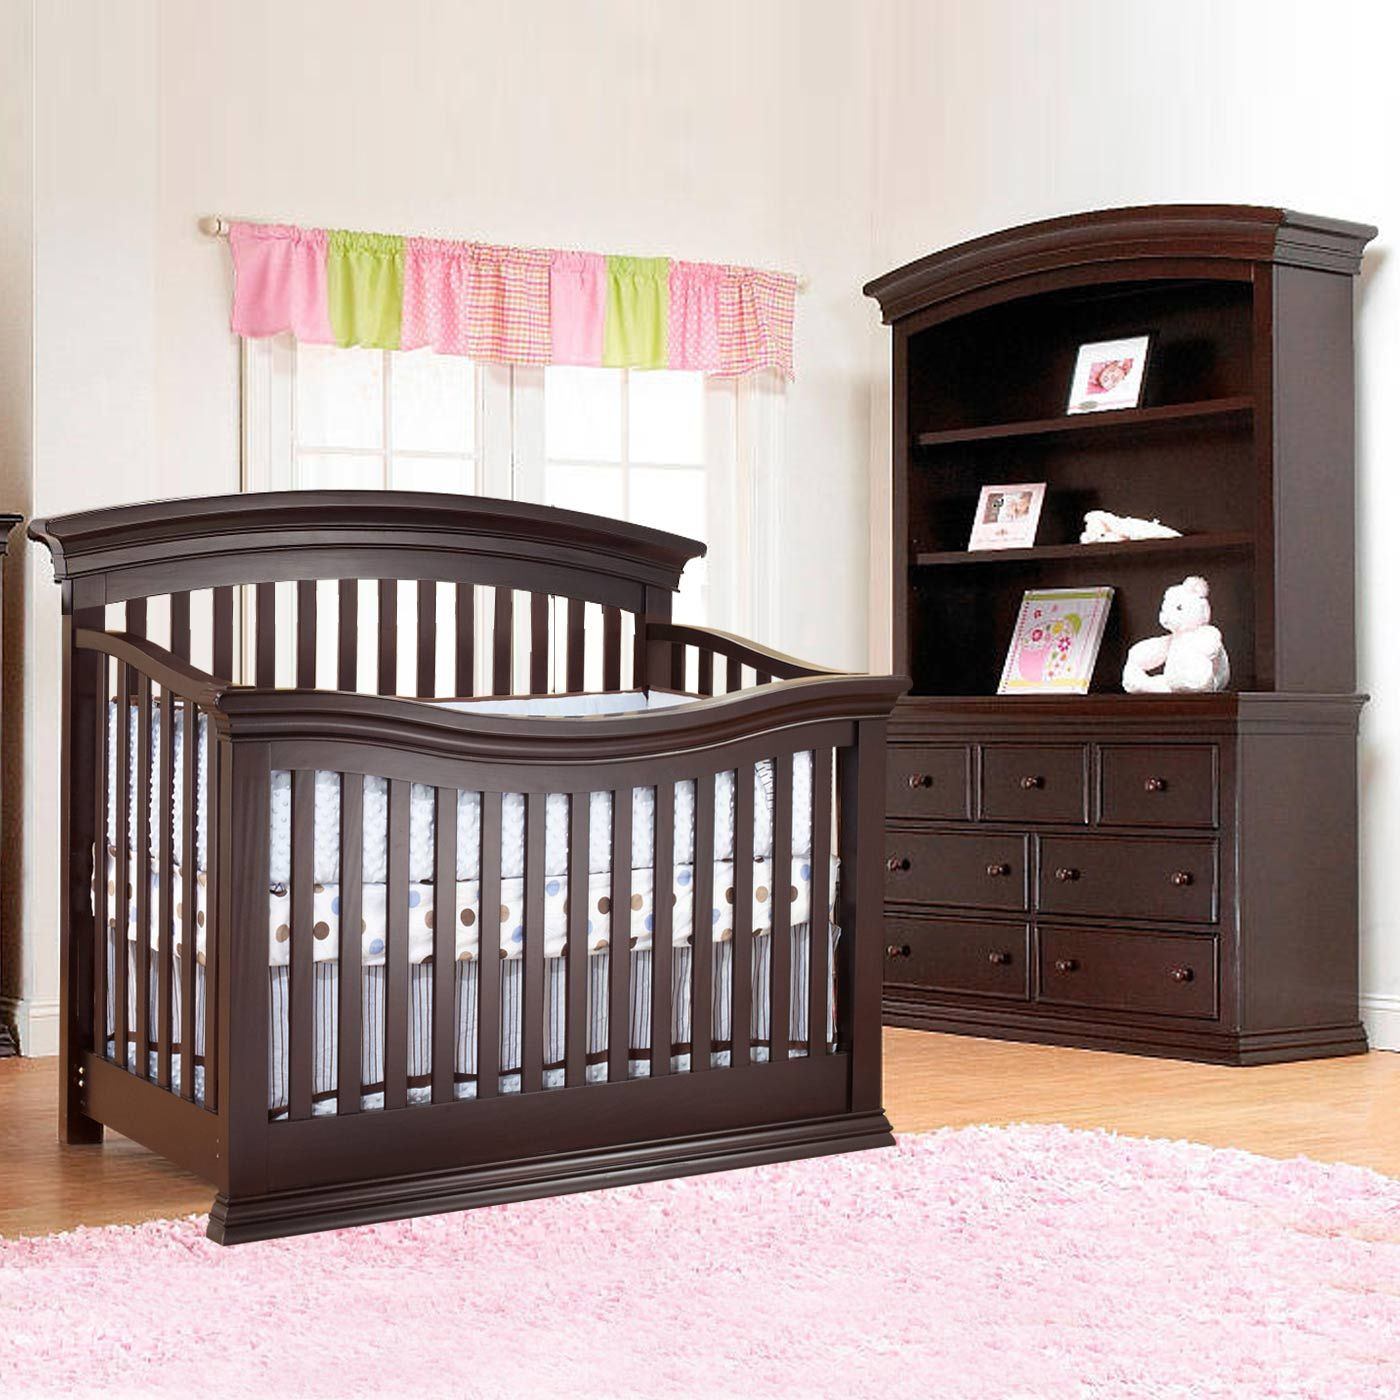 Baby Furniture Sets Espresso Interior Paint Color Ideas Check More At Http